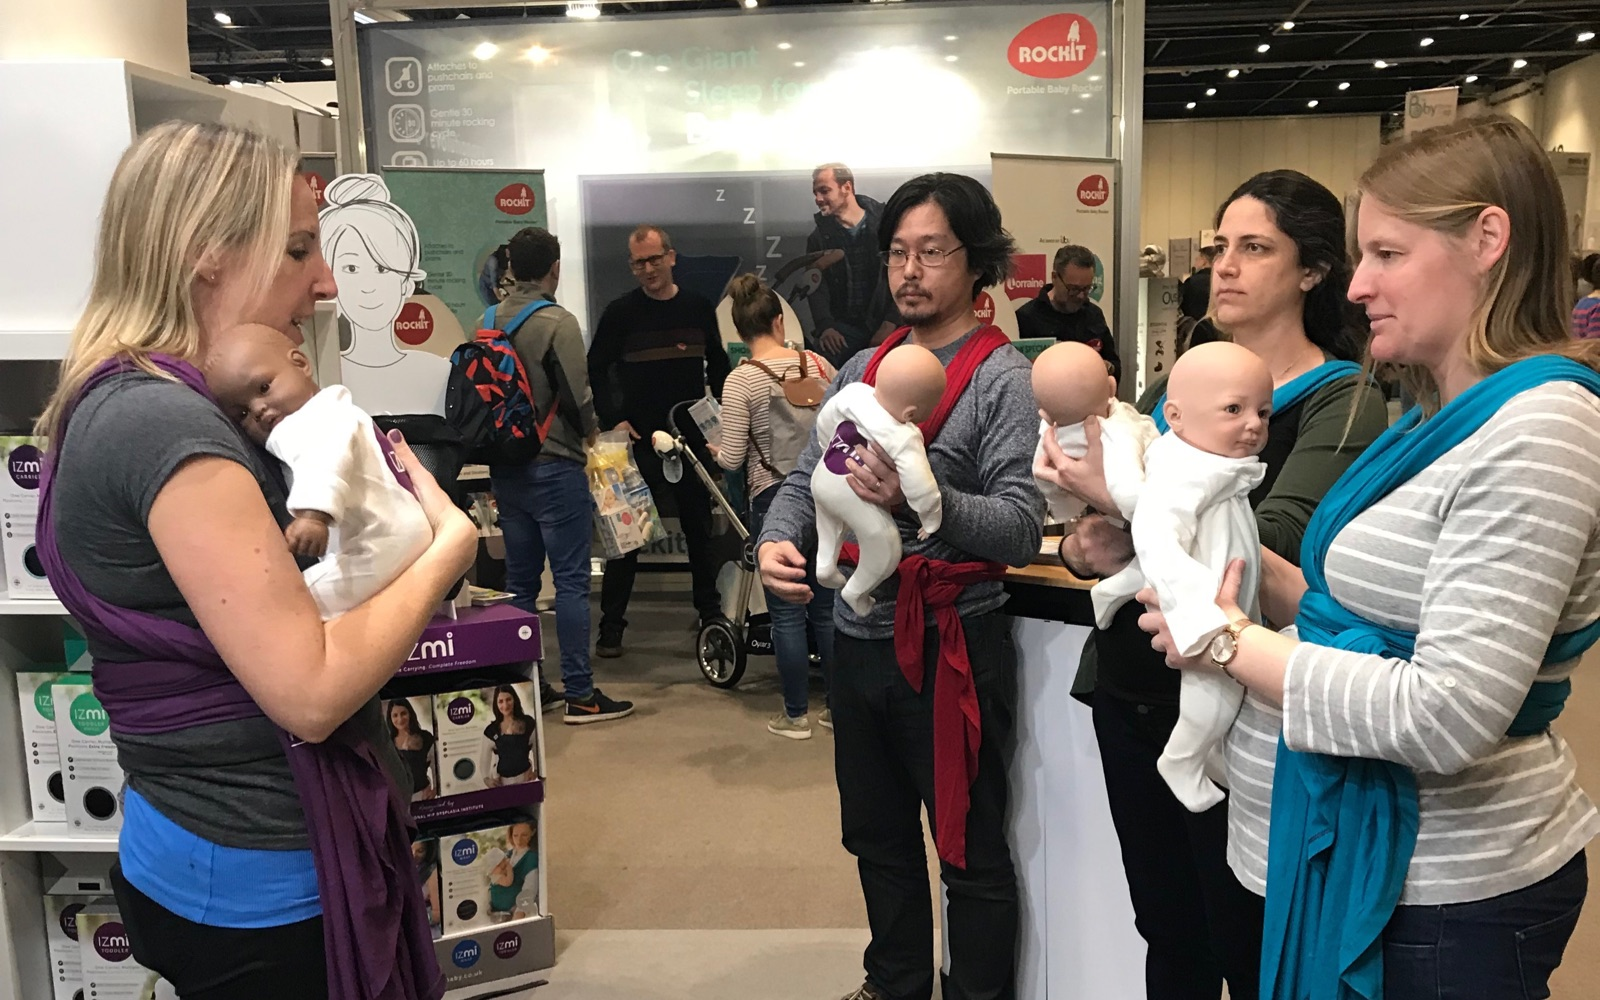 Roamy demonstrating how to use a babycarrier to a small group of people